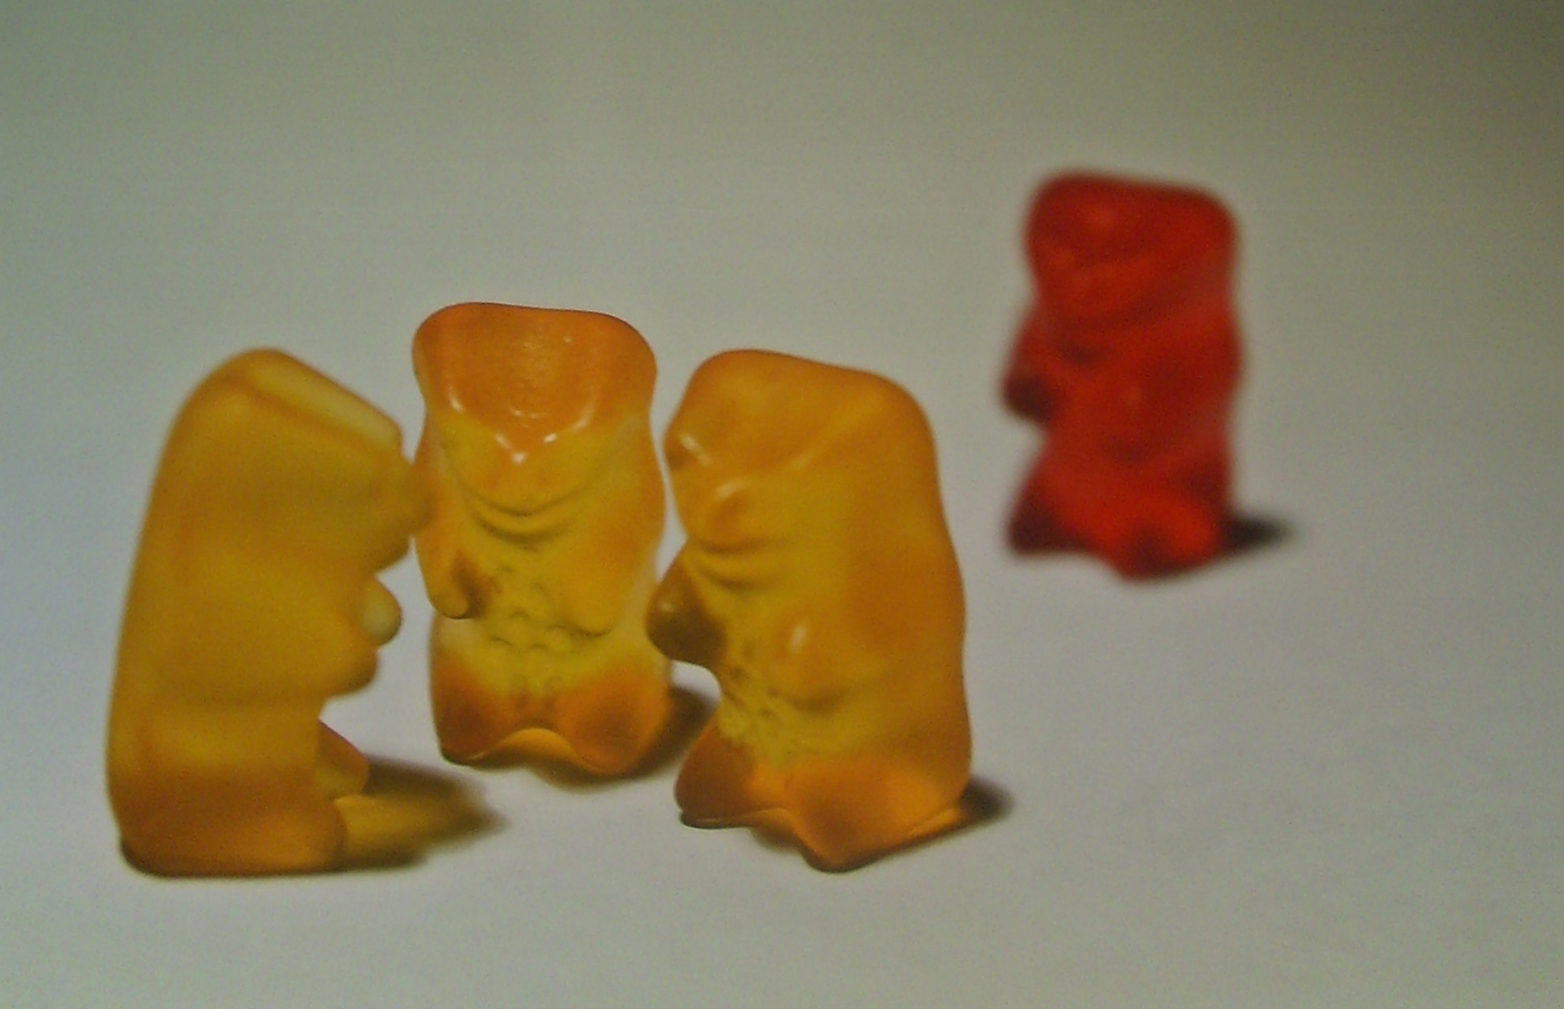 gummy-bears-exclusion